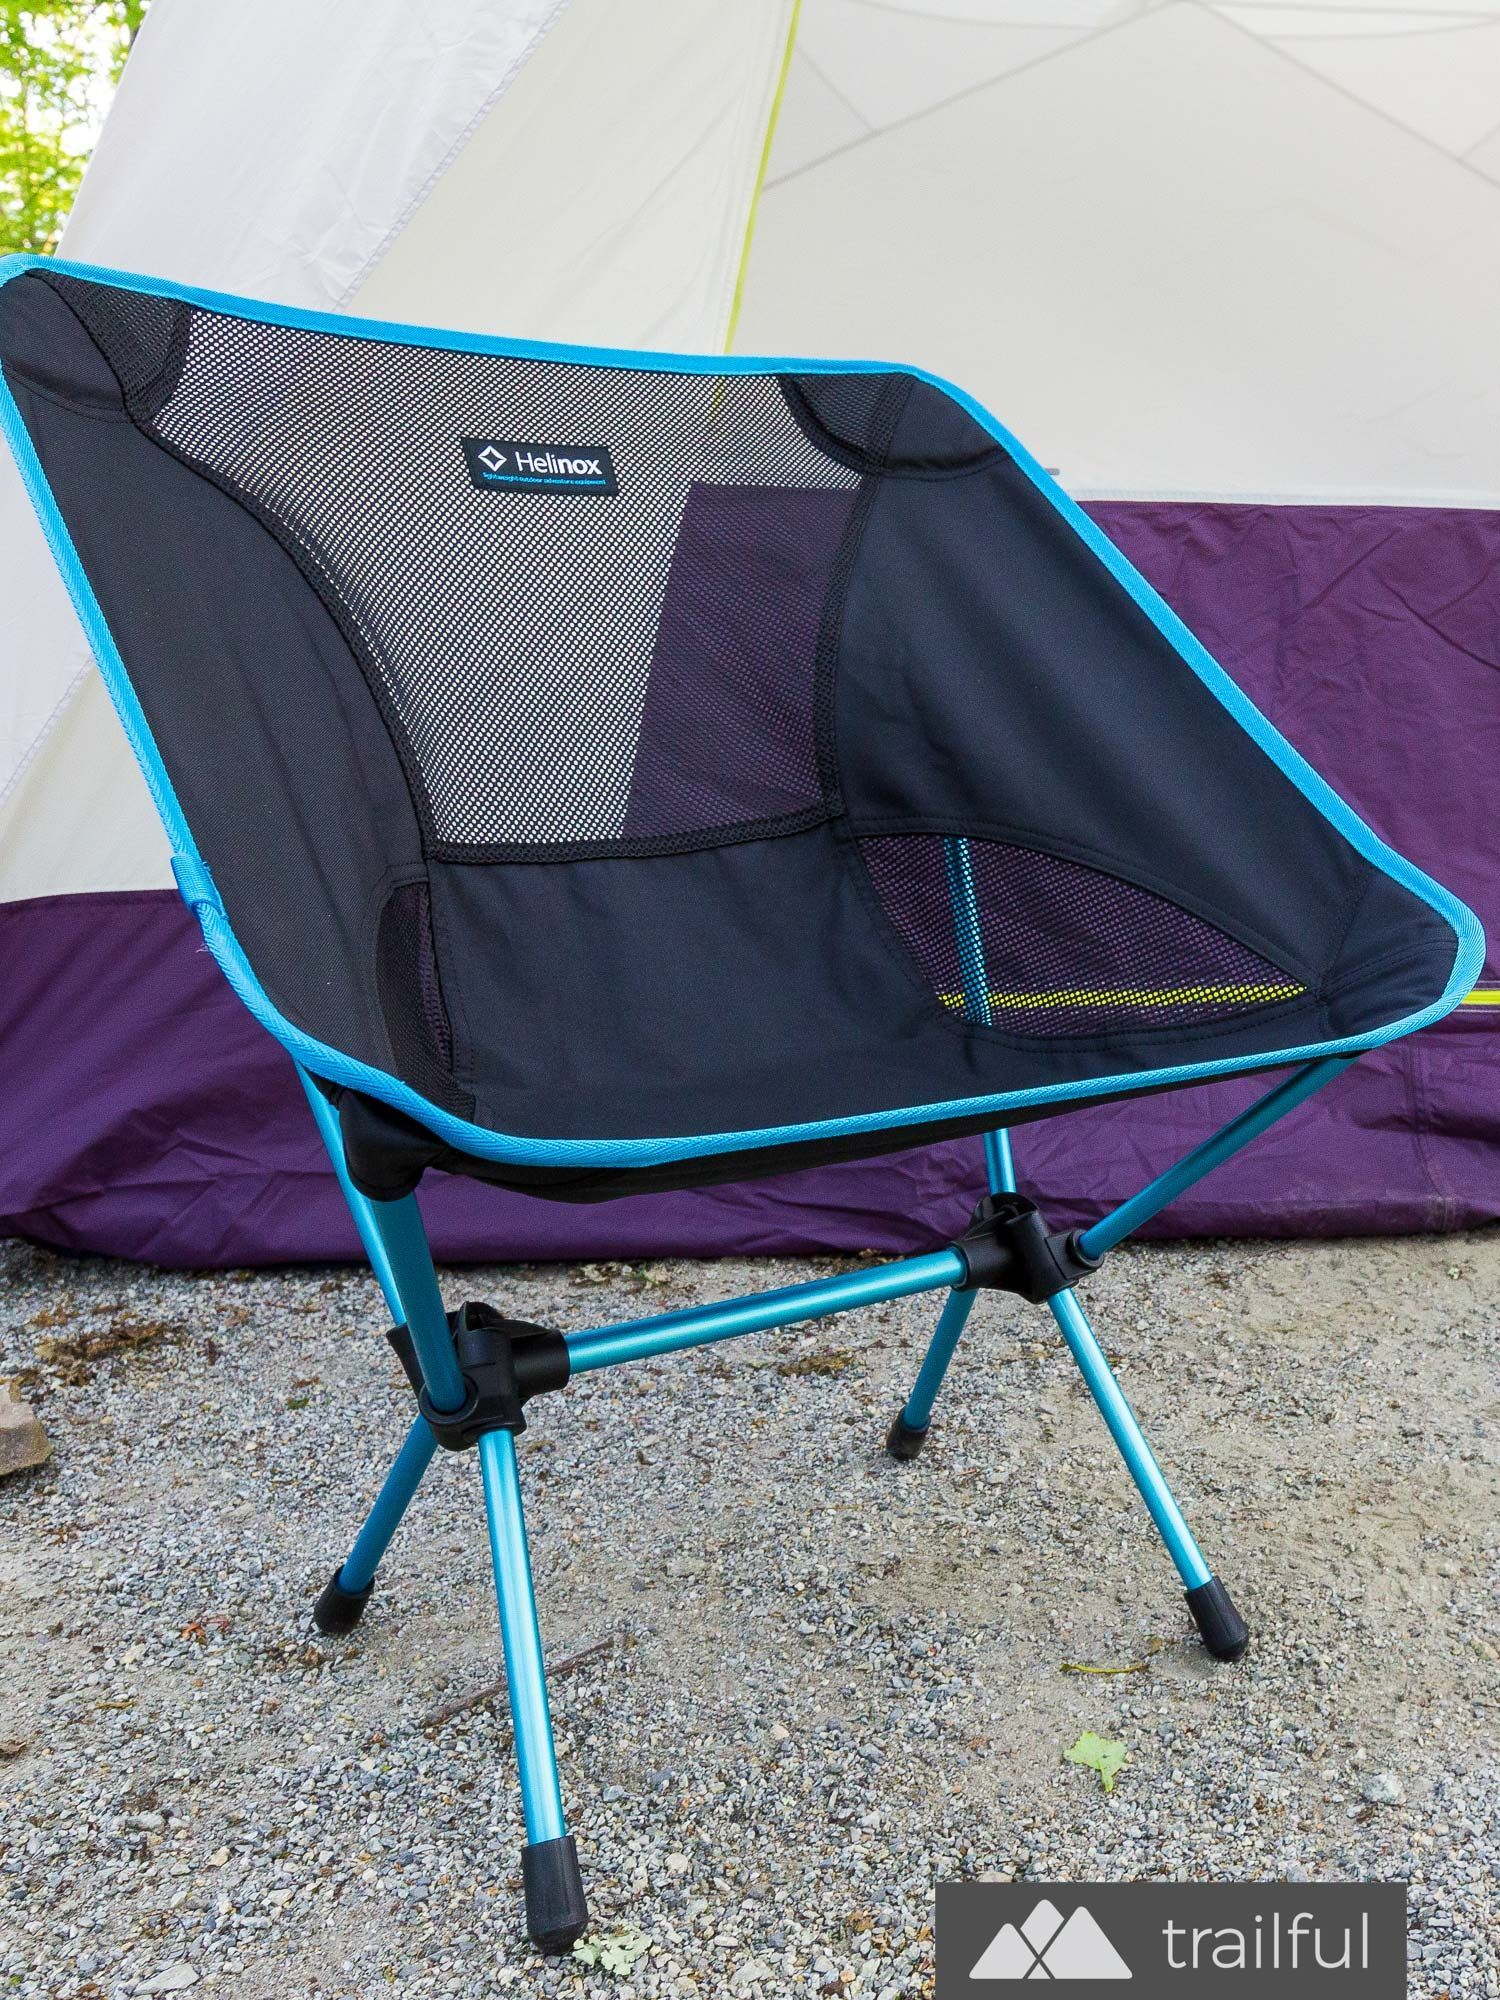 Helinox chair one review camping chairs masters chair